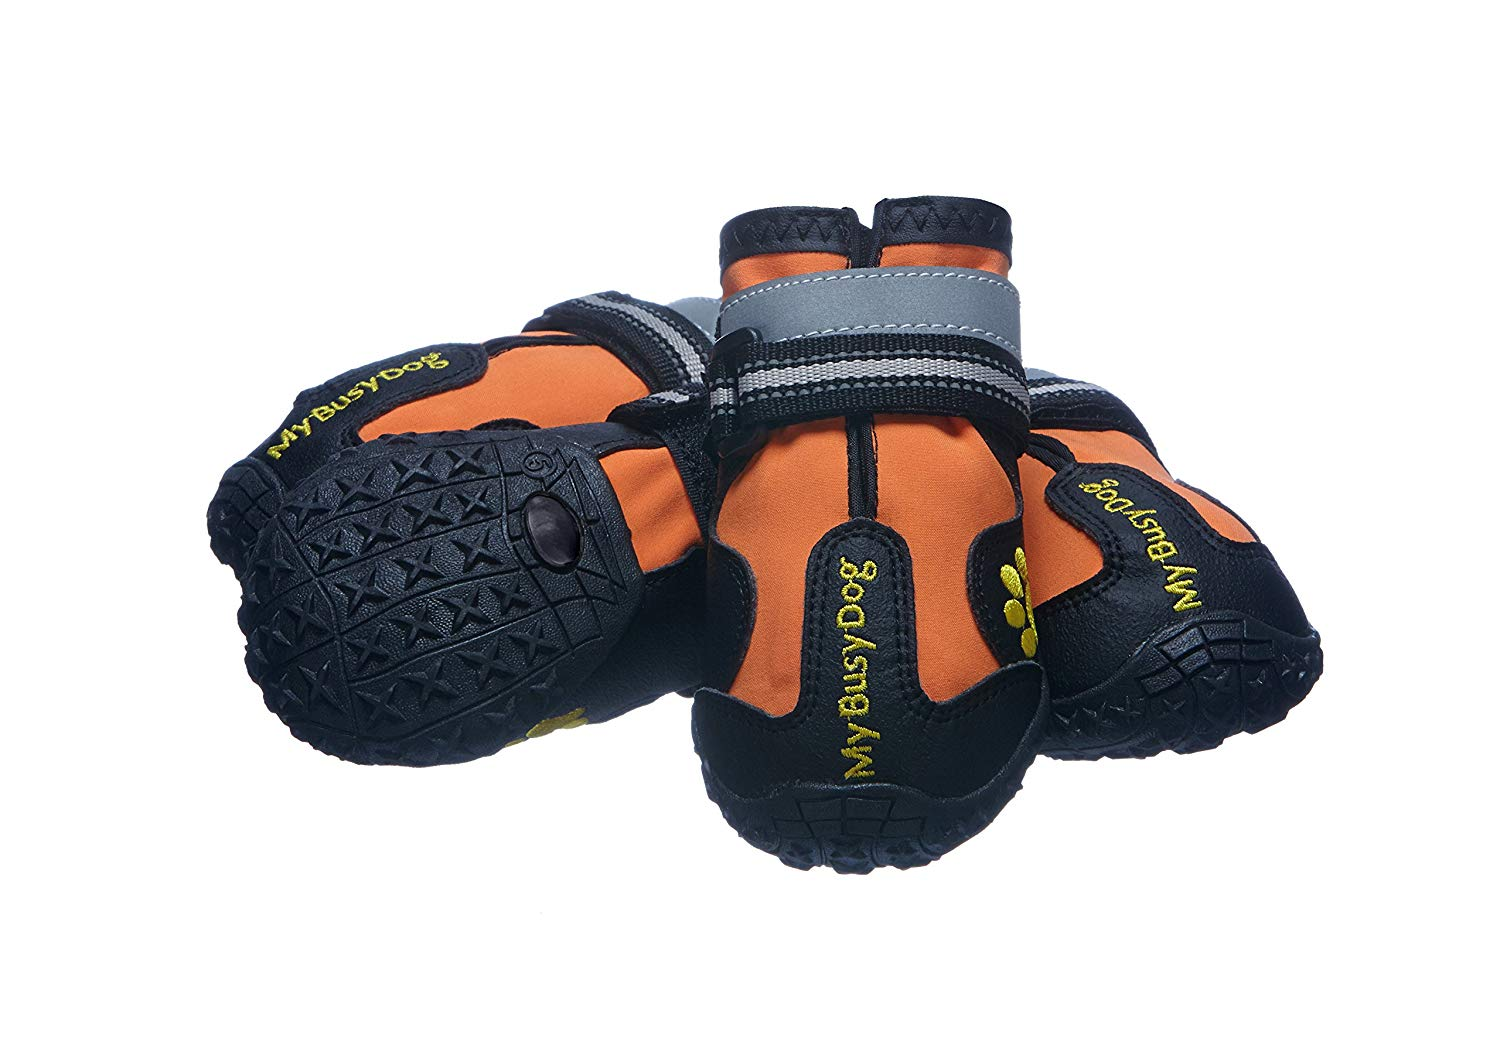 rugged reflective dog shoes for hiking with dogs